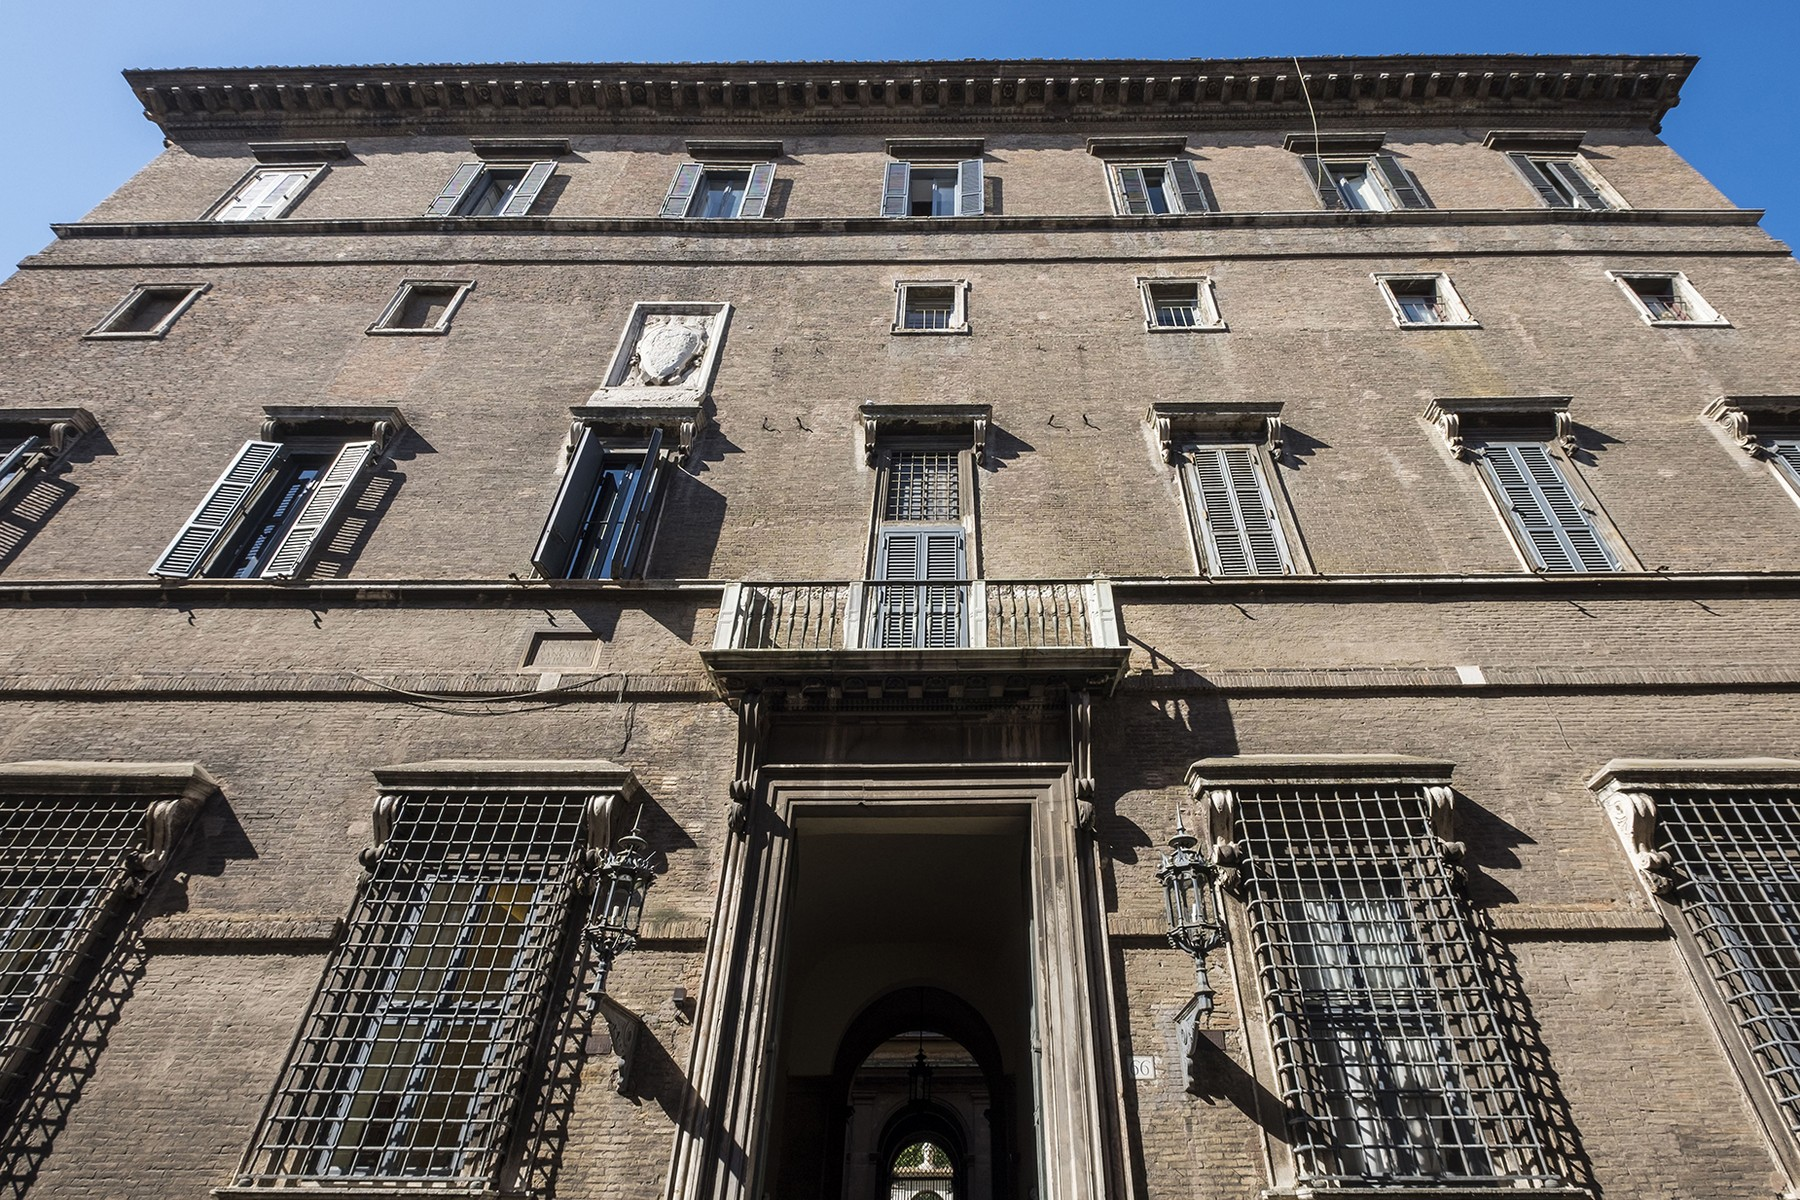 Casa Unifamiliar por un Venta en Palazzo Sacchetti, a pearl of the late Reinassance in the heart of Rome Via Giulia Rome, Roma, 00186 Italia